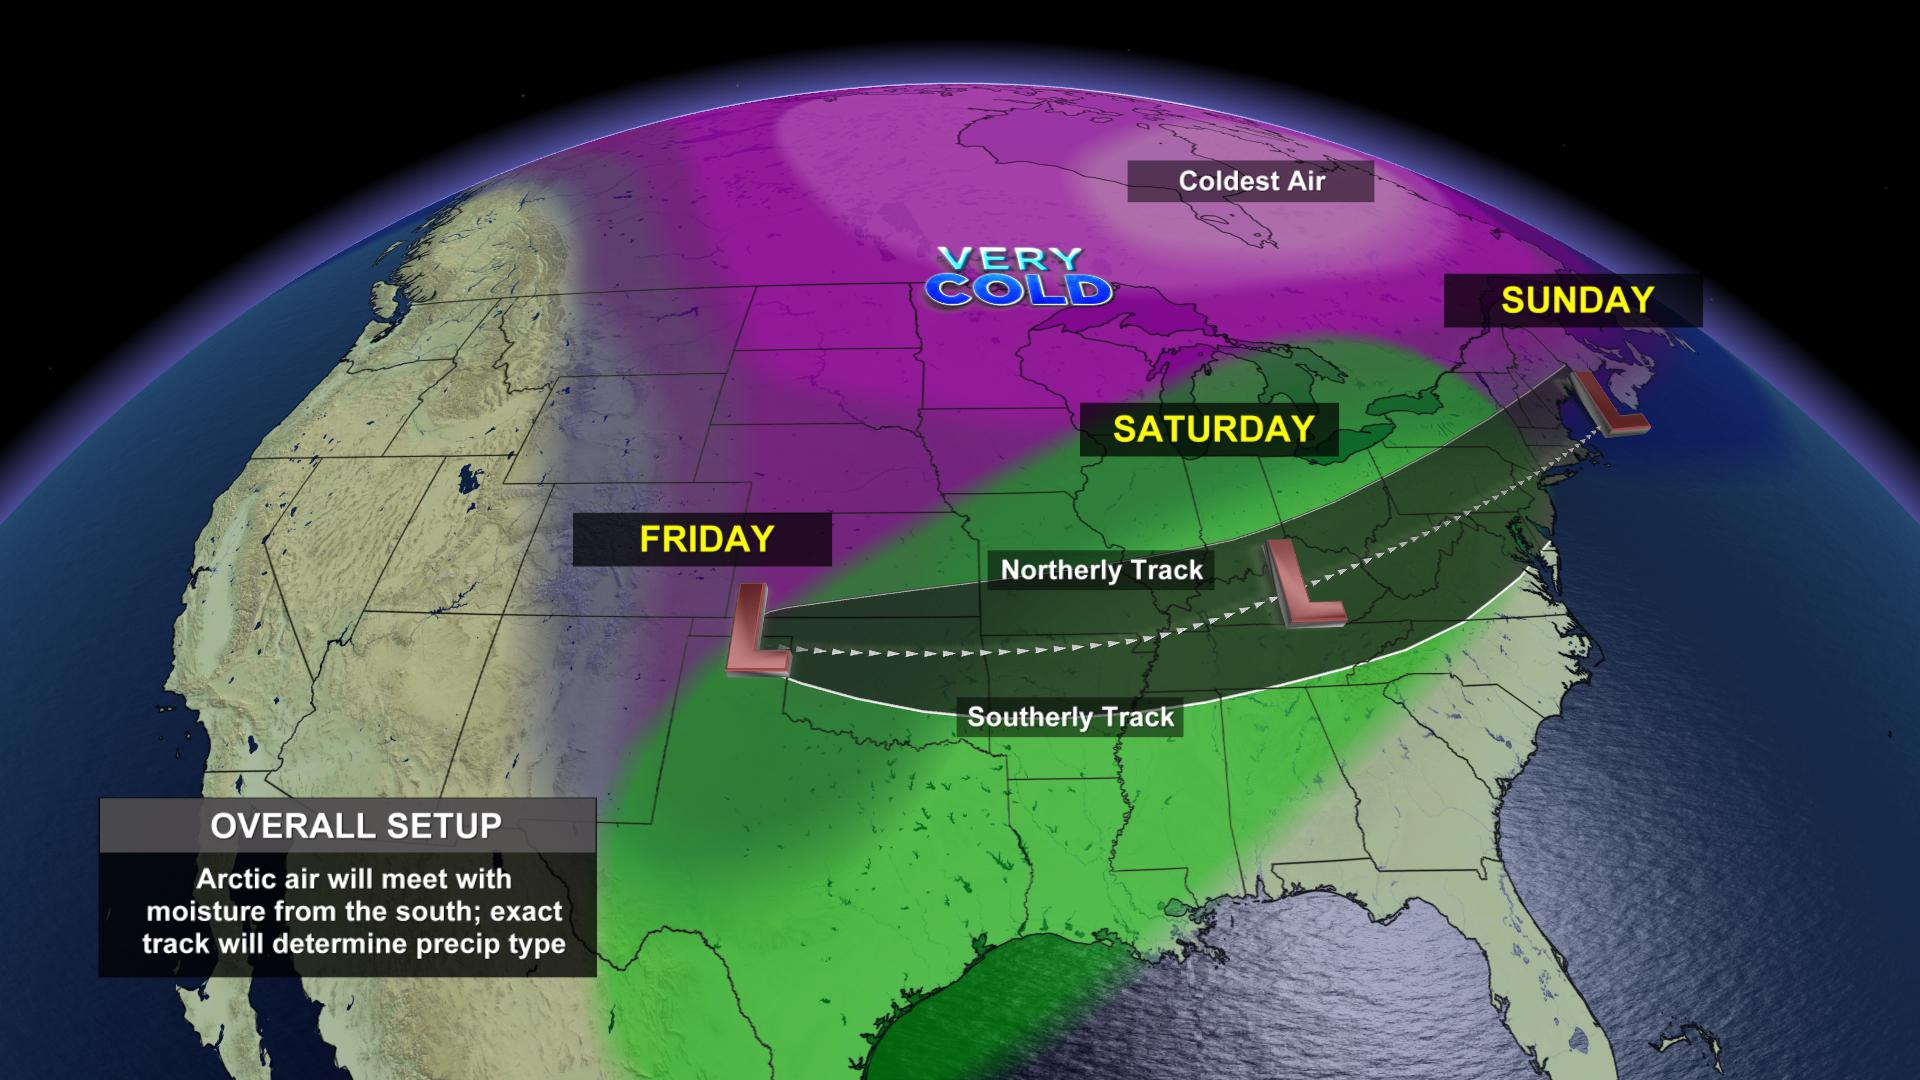 Big weekend winter weather maker heading our way